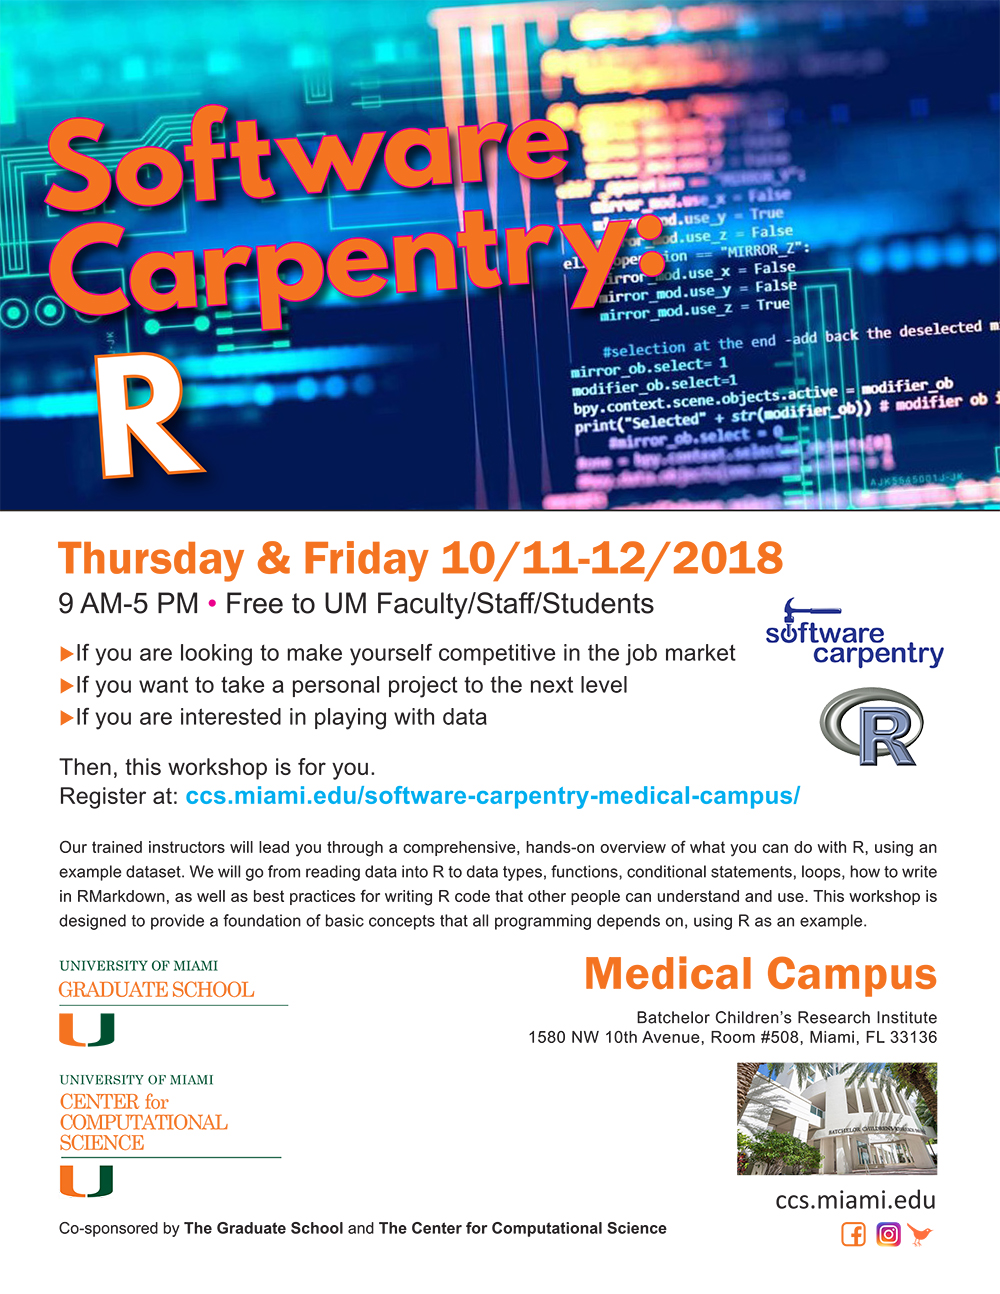 University of Miami Software Carpentry Flyer